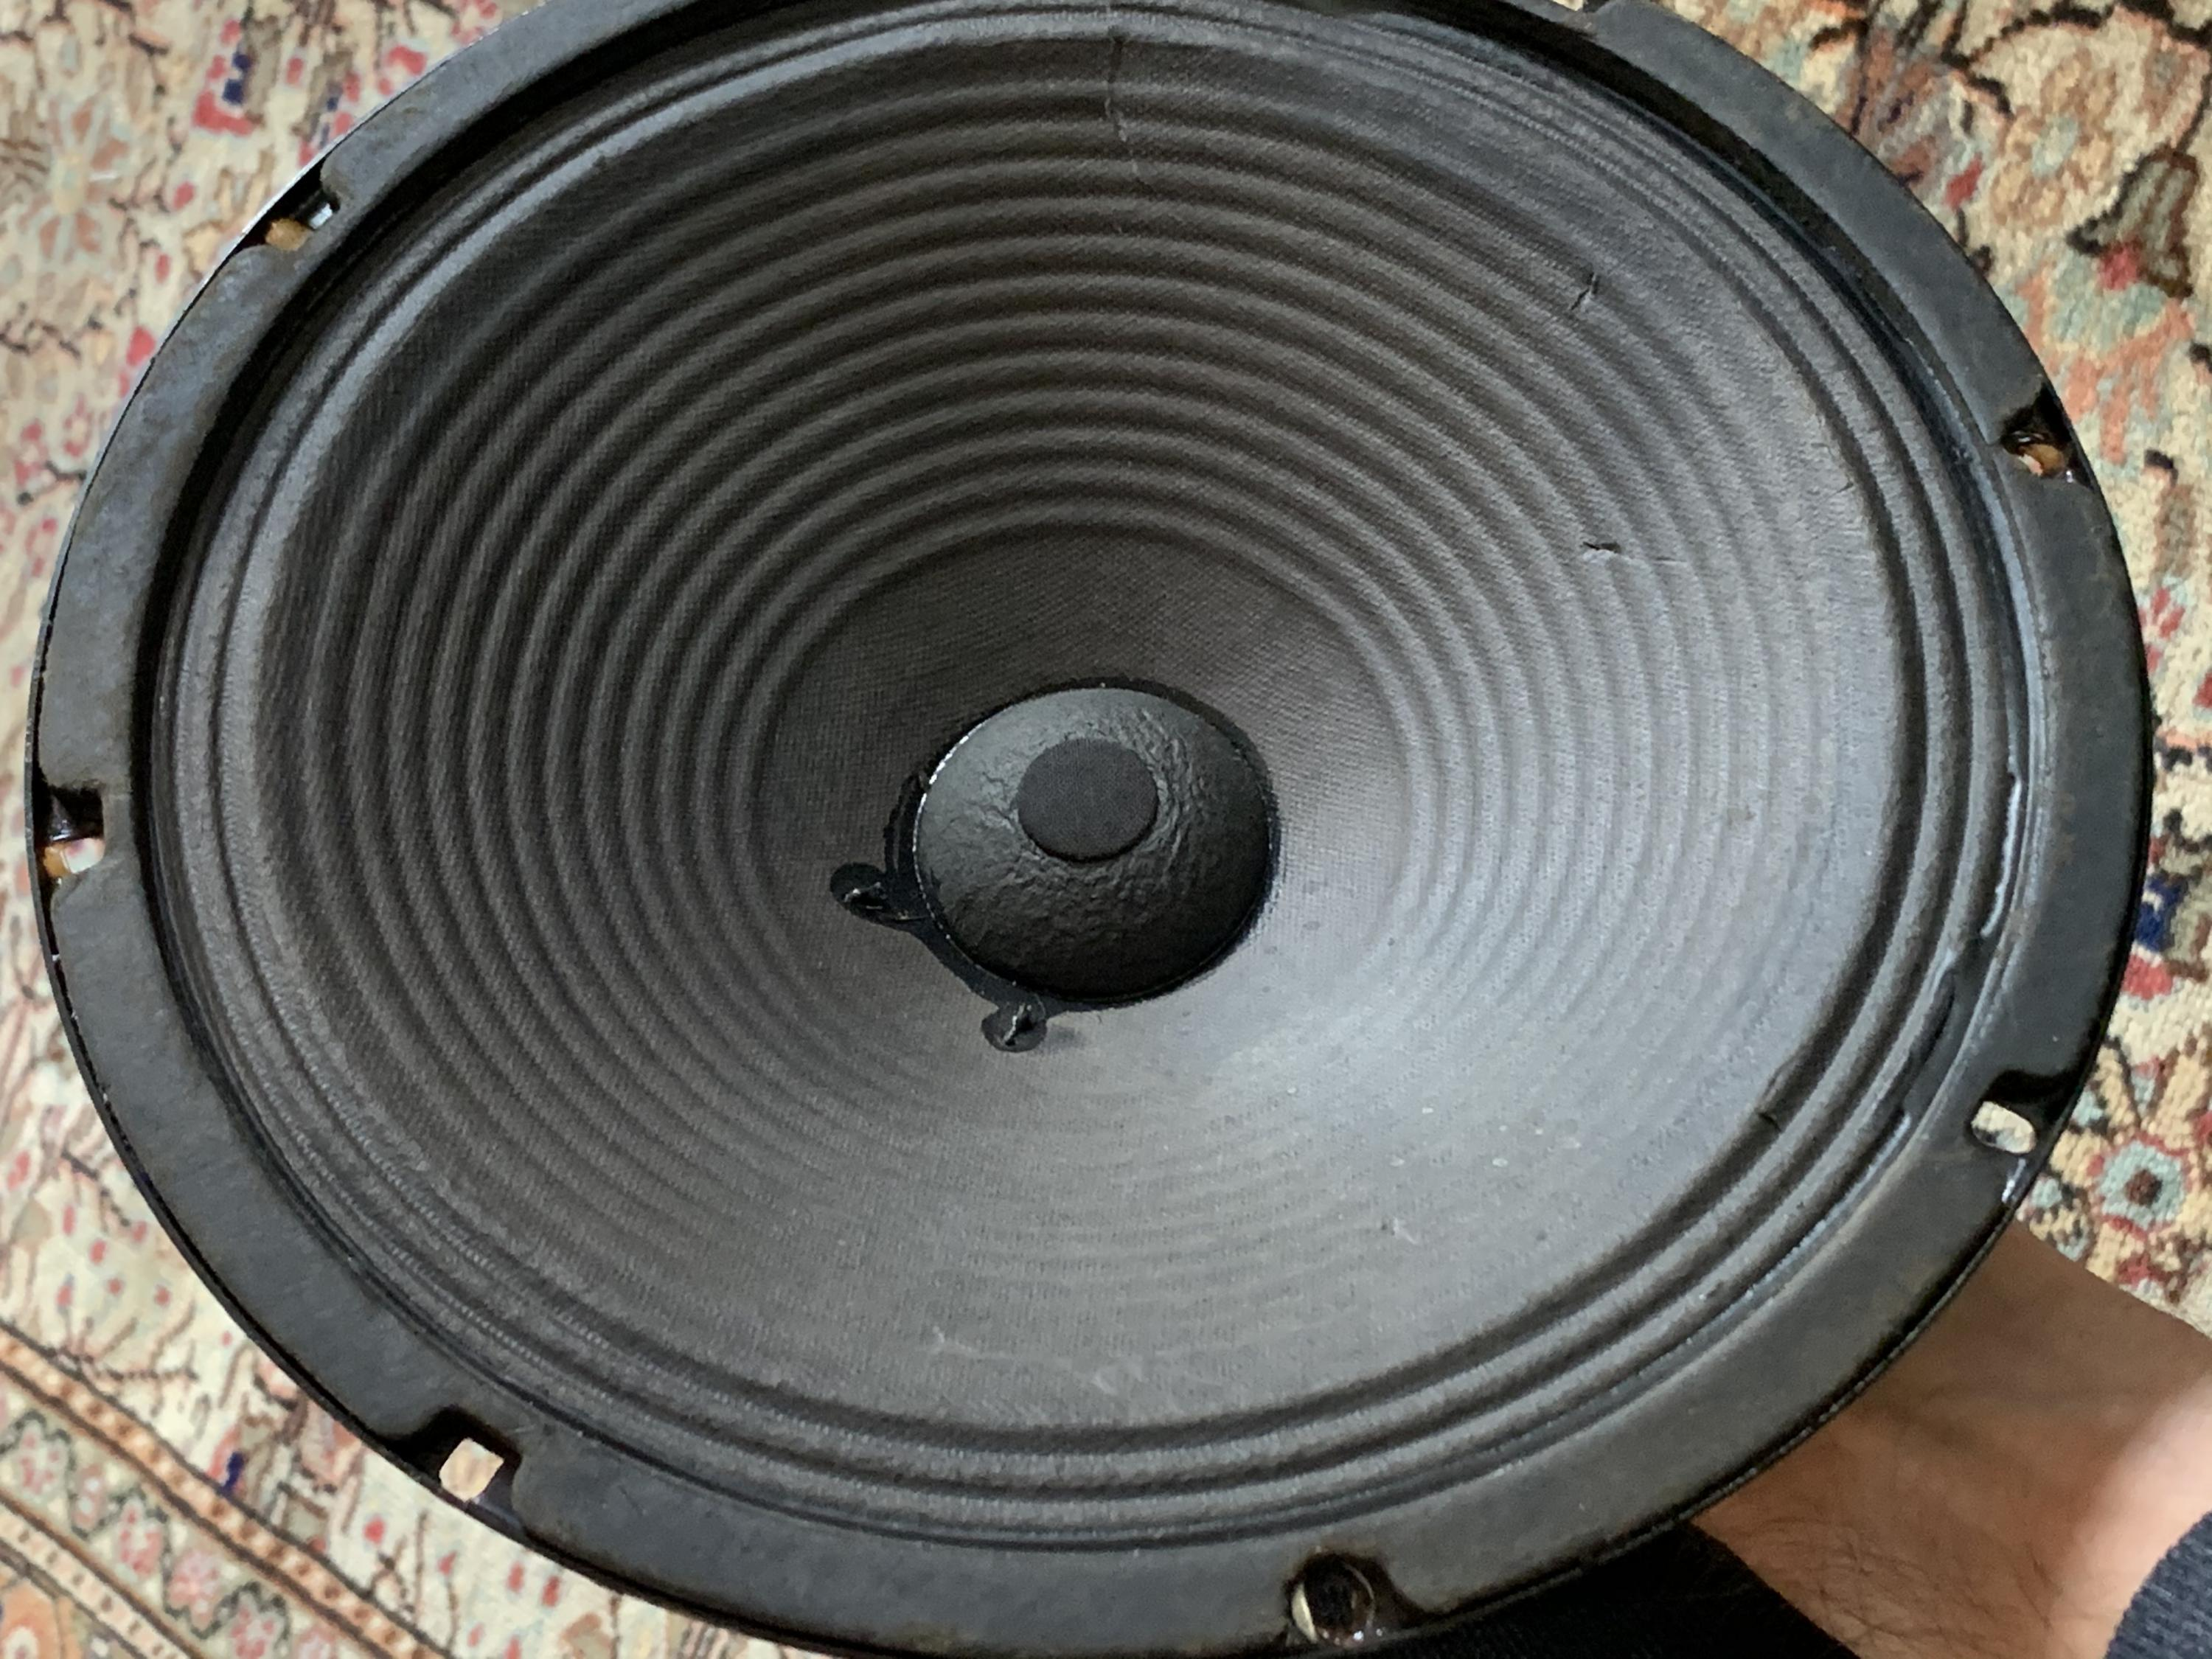 Can someone ID this speaker?-493ed9e5-0480-4d97-944d-888a6cb8014f-jpg